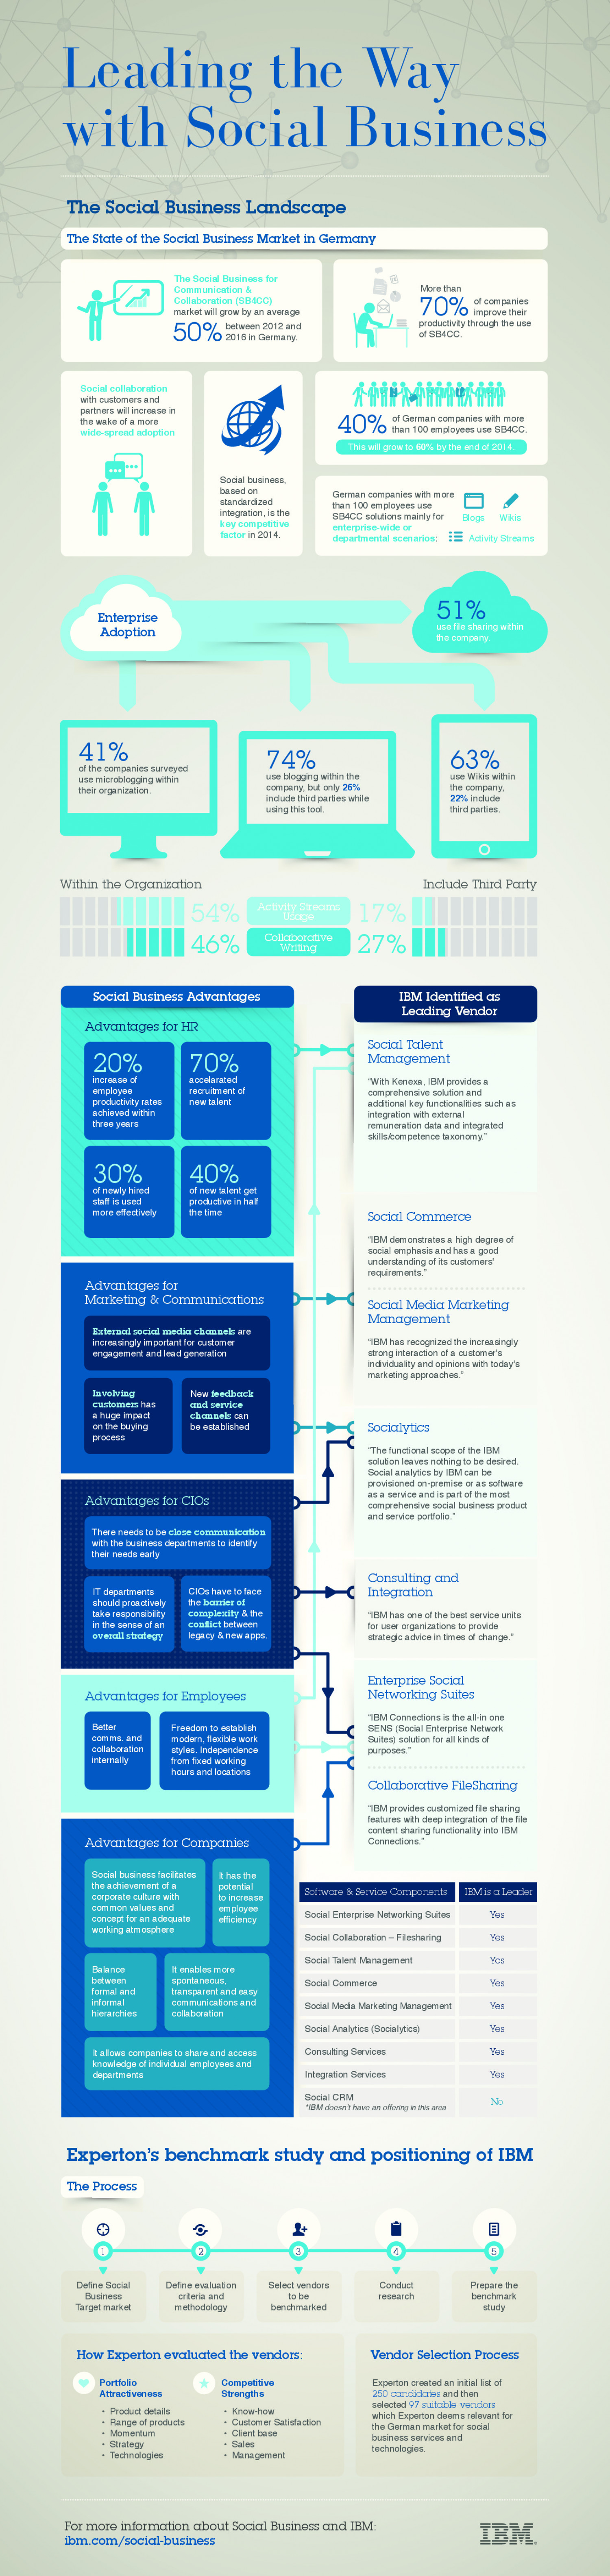 Leading the Way with Social Business Infographic